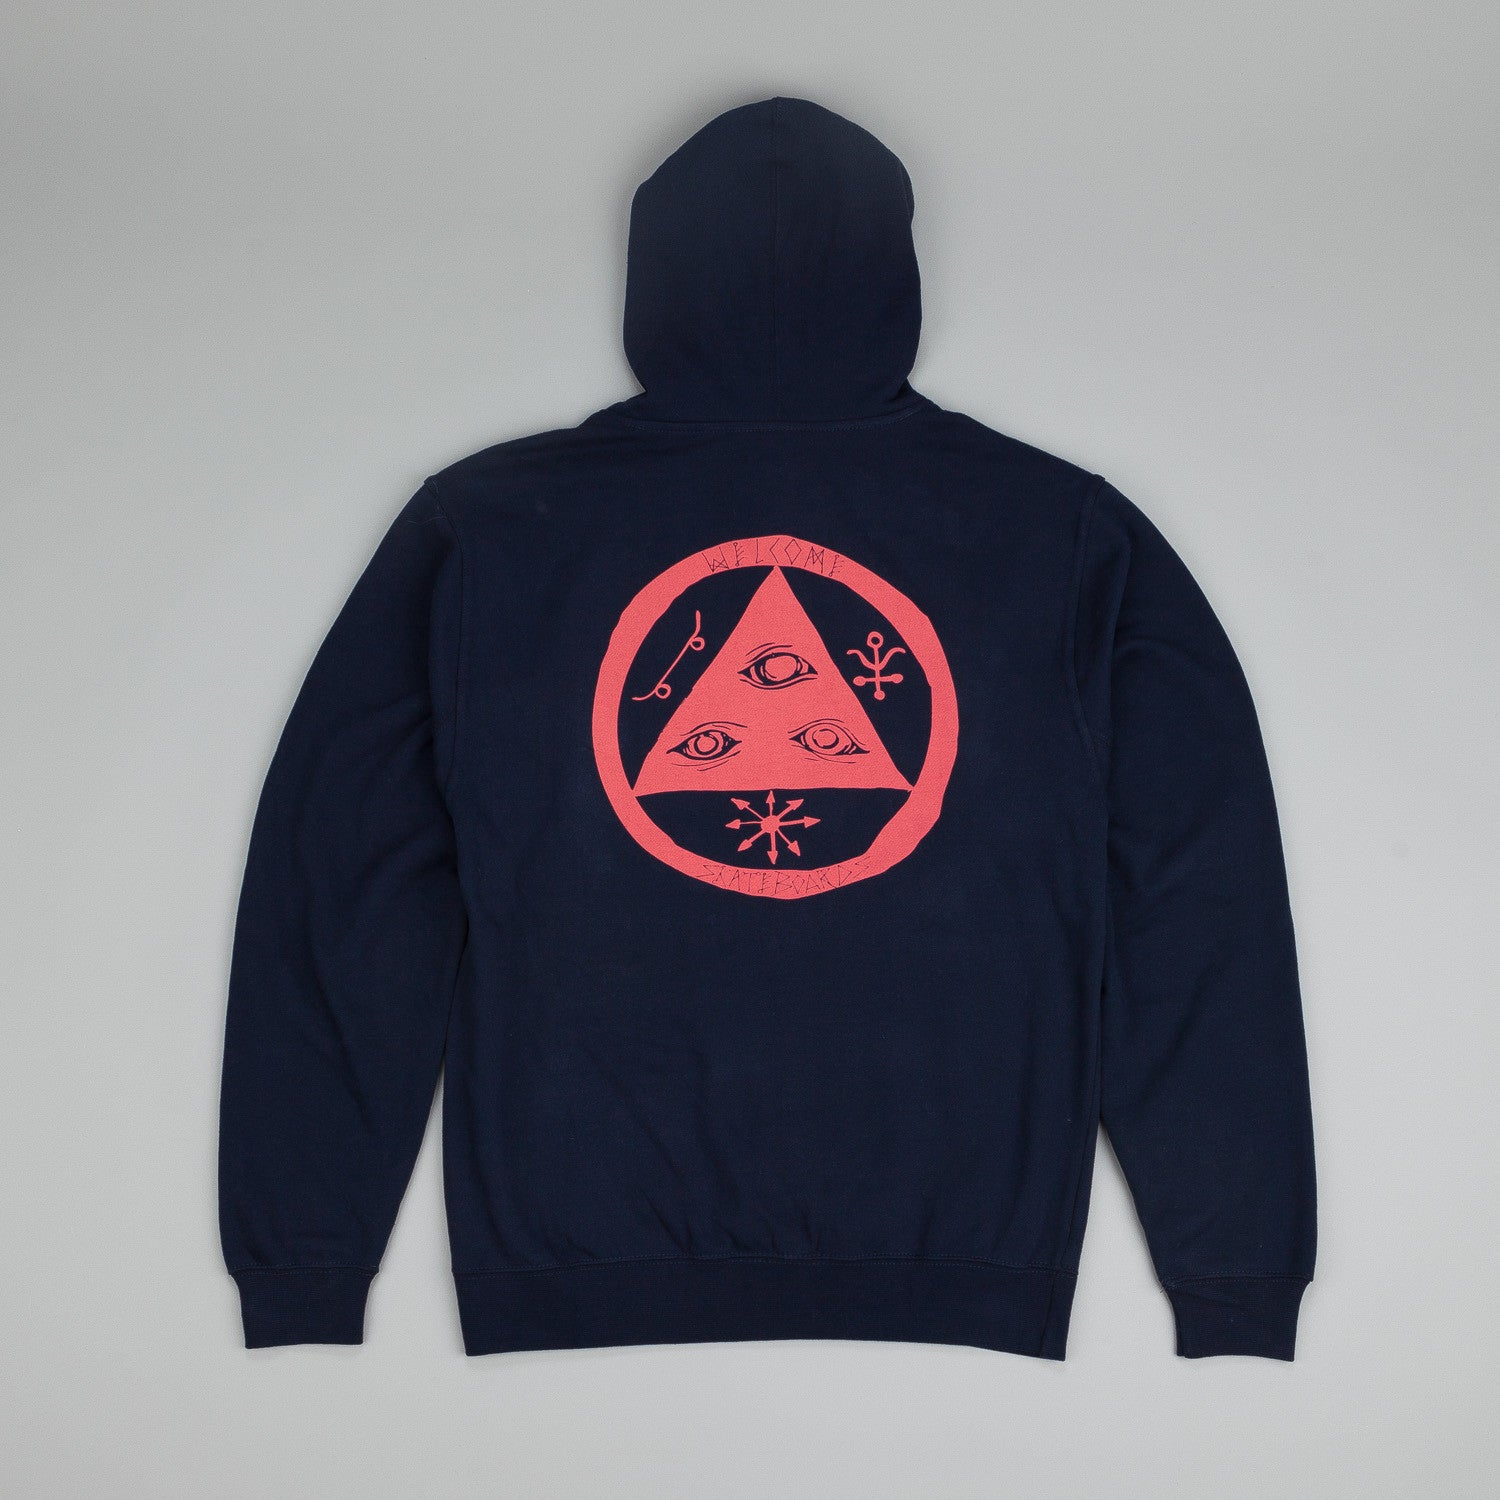 Welcome Talisman Pullover Hooded Sweatshirt Navy